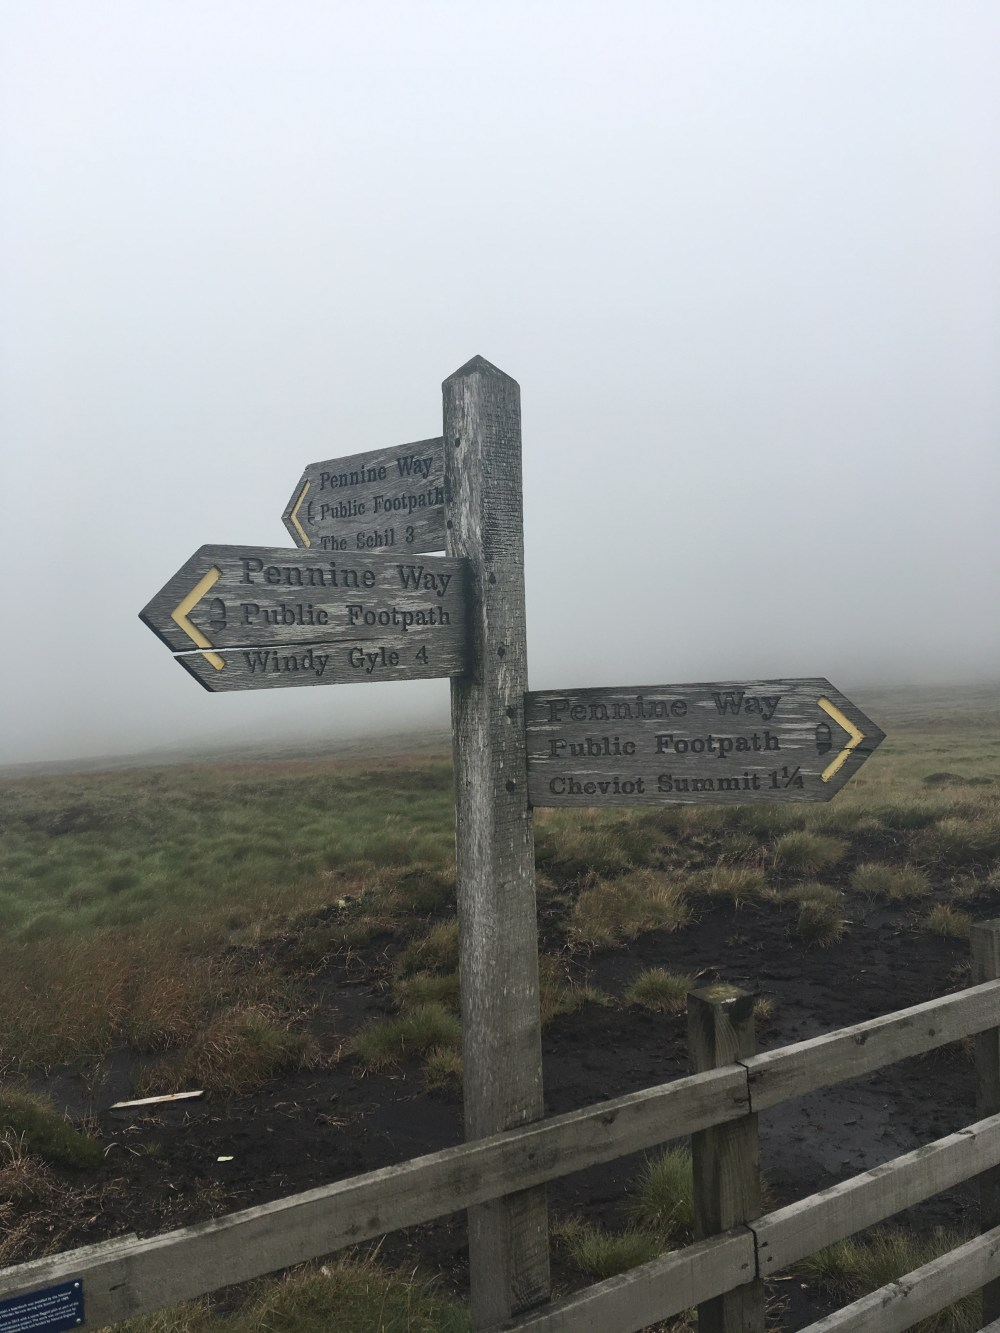 Cheviot summit sign, LEJoG Day 57